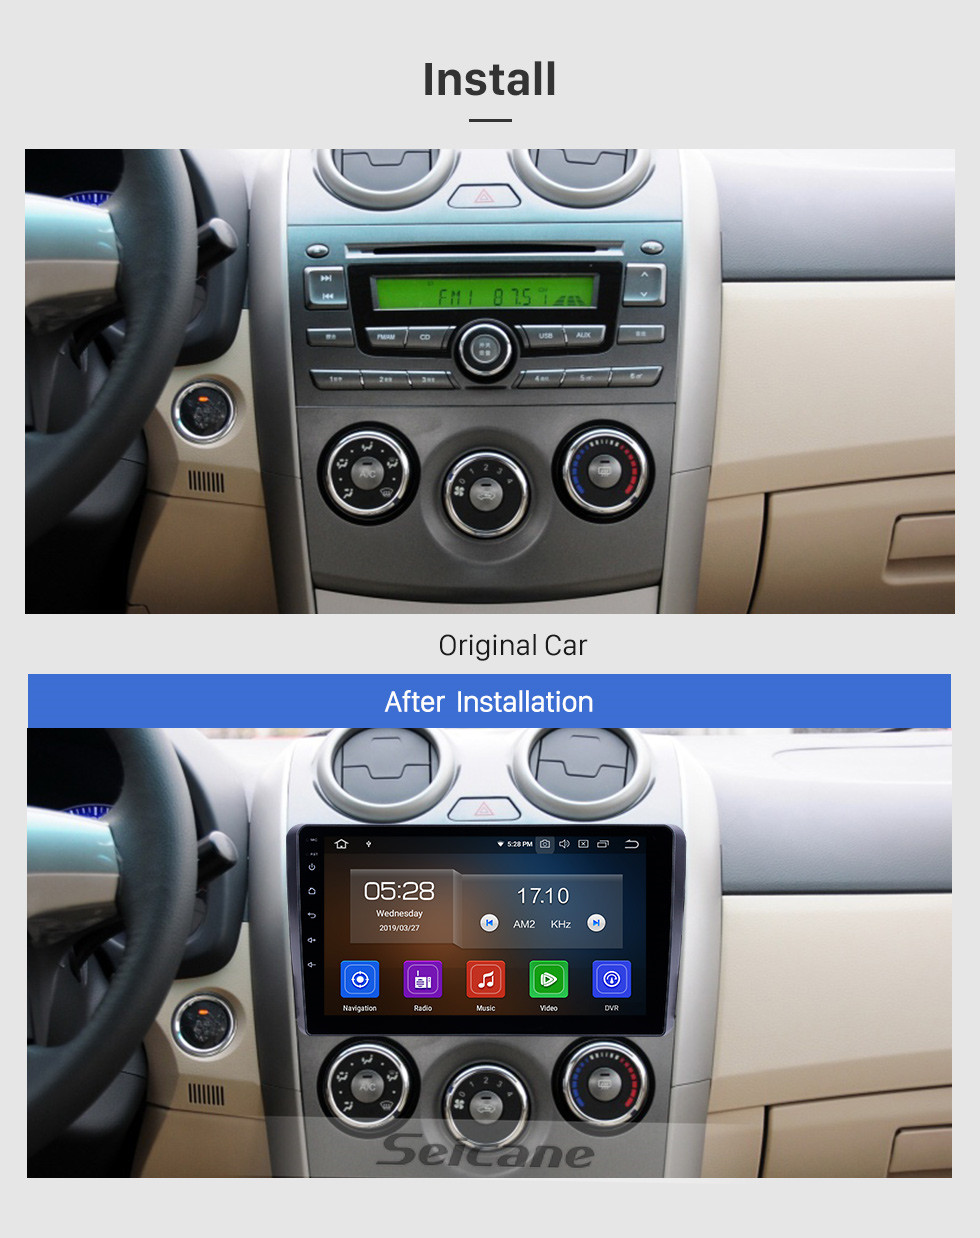 Seicane 9 inch 2010-2018 BYD G3 Android 10.0 GPS Navigation Radio WIFI Bluetooth HD Touchscreen Carplay support TPMS DVR Mirror Link